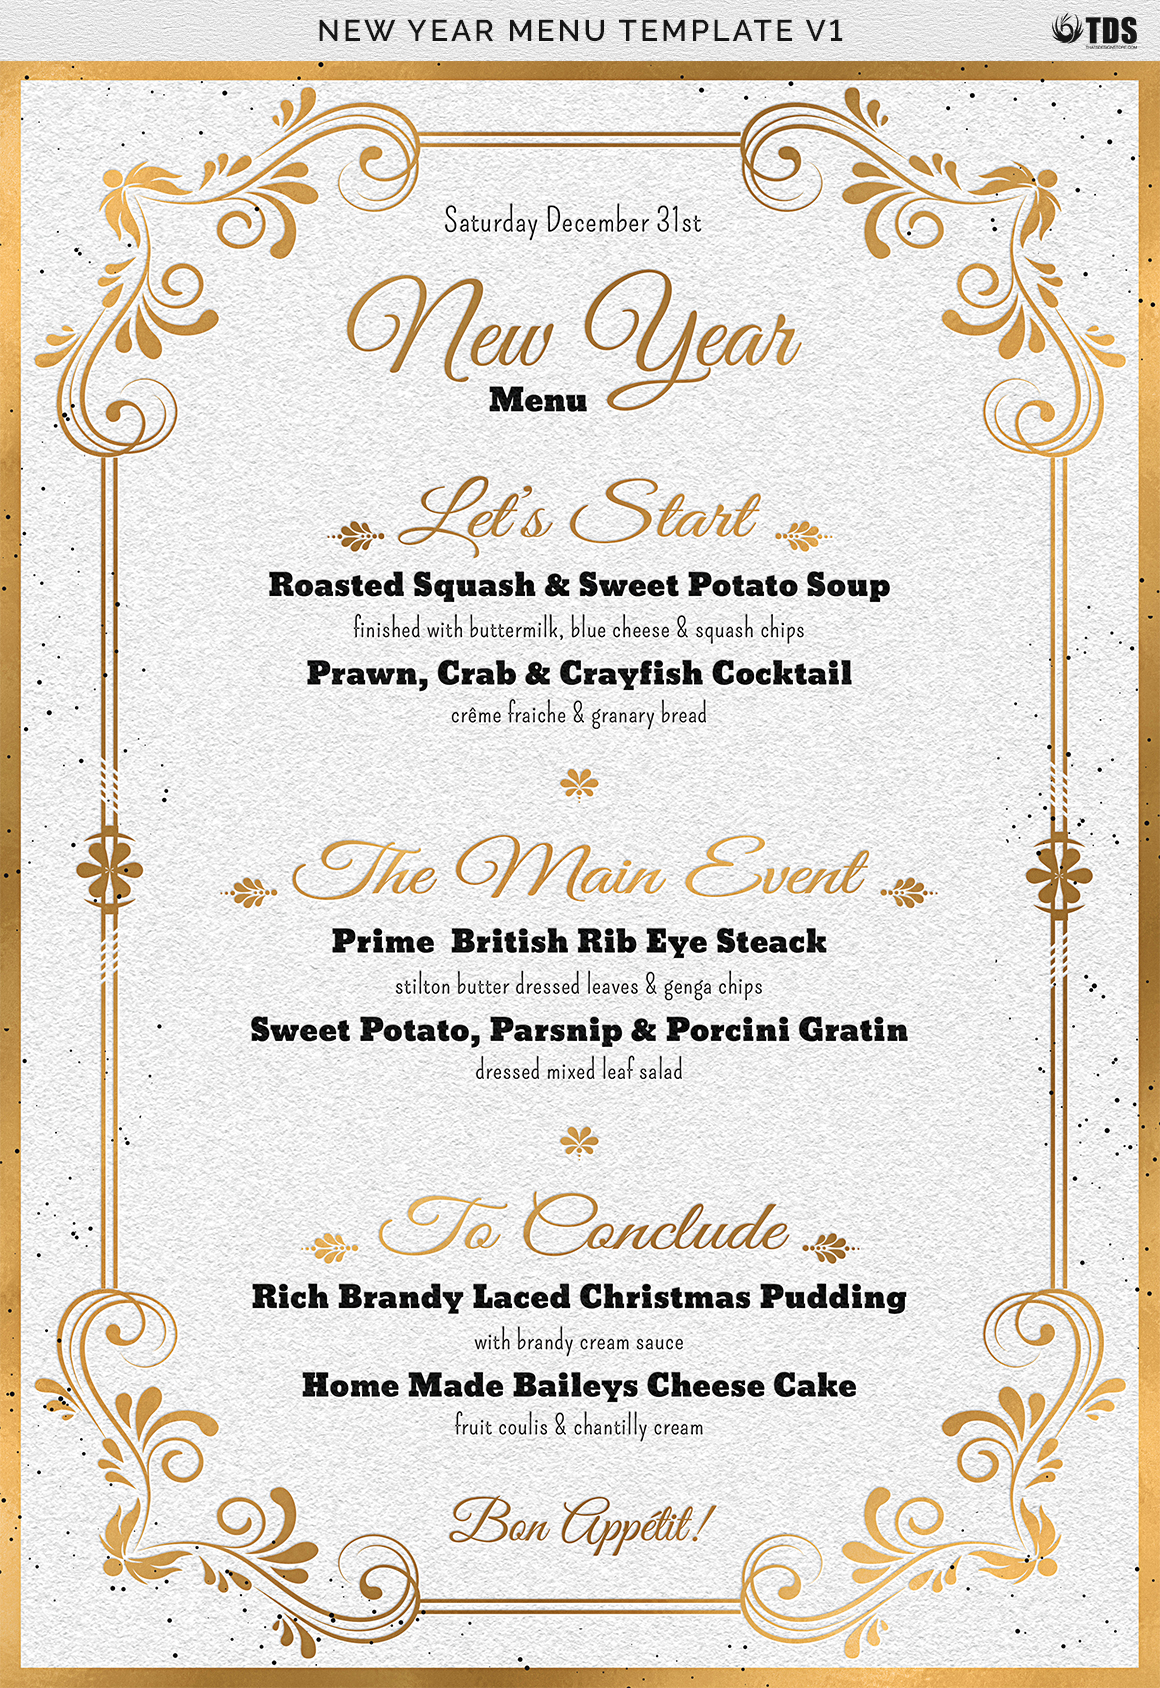 New Year Menu Template V1 example image 12